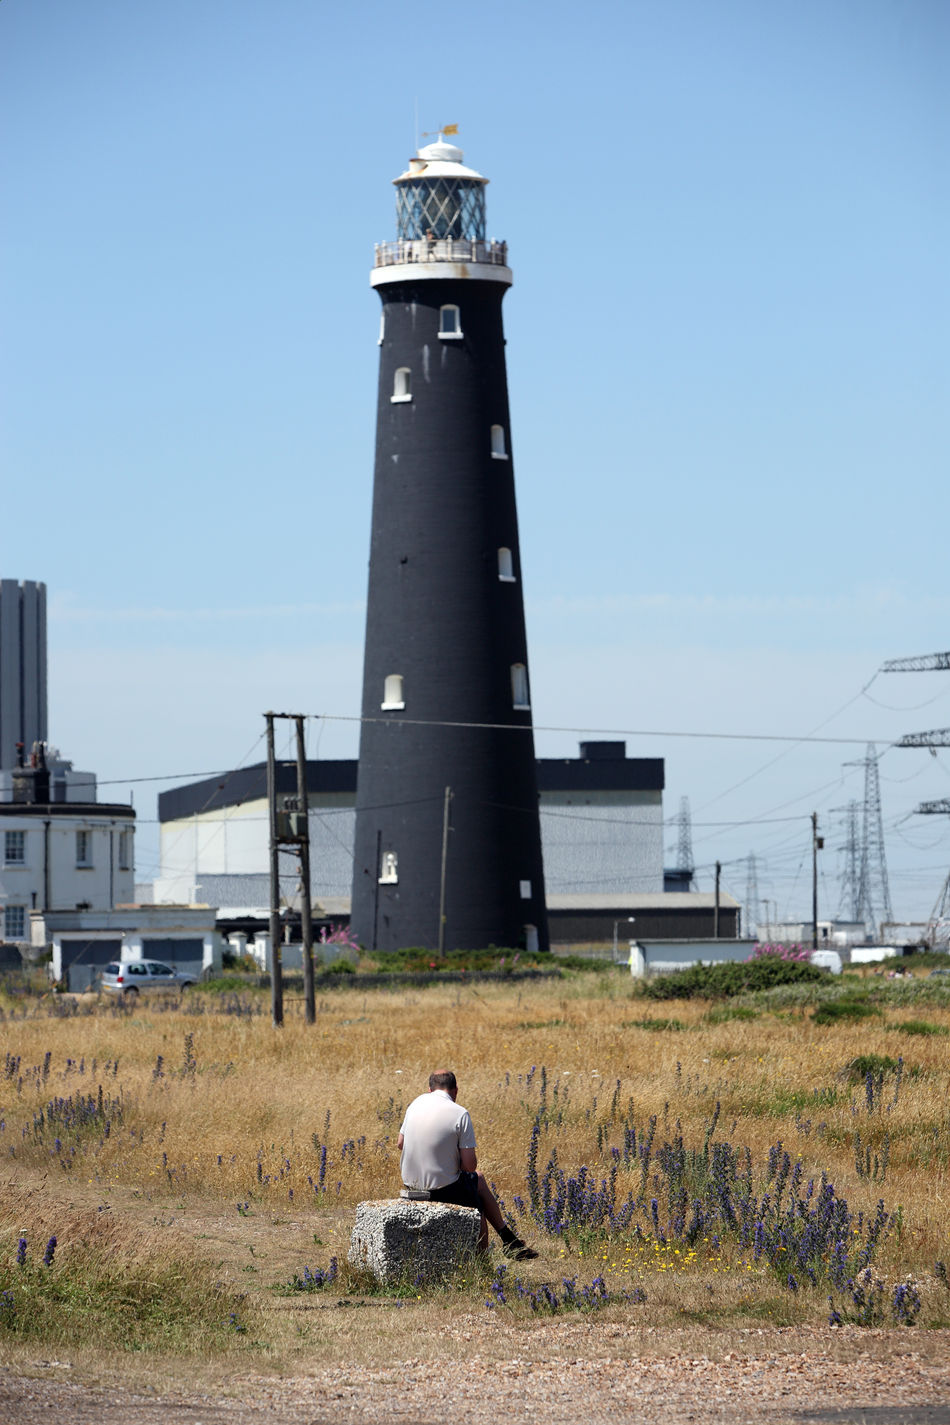 Chilling Contemplation Dungeness Inlandempire Left Out Lighthouse Old But Me & Mari  Reclusi Reject SA Solitary Taking Time Out